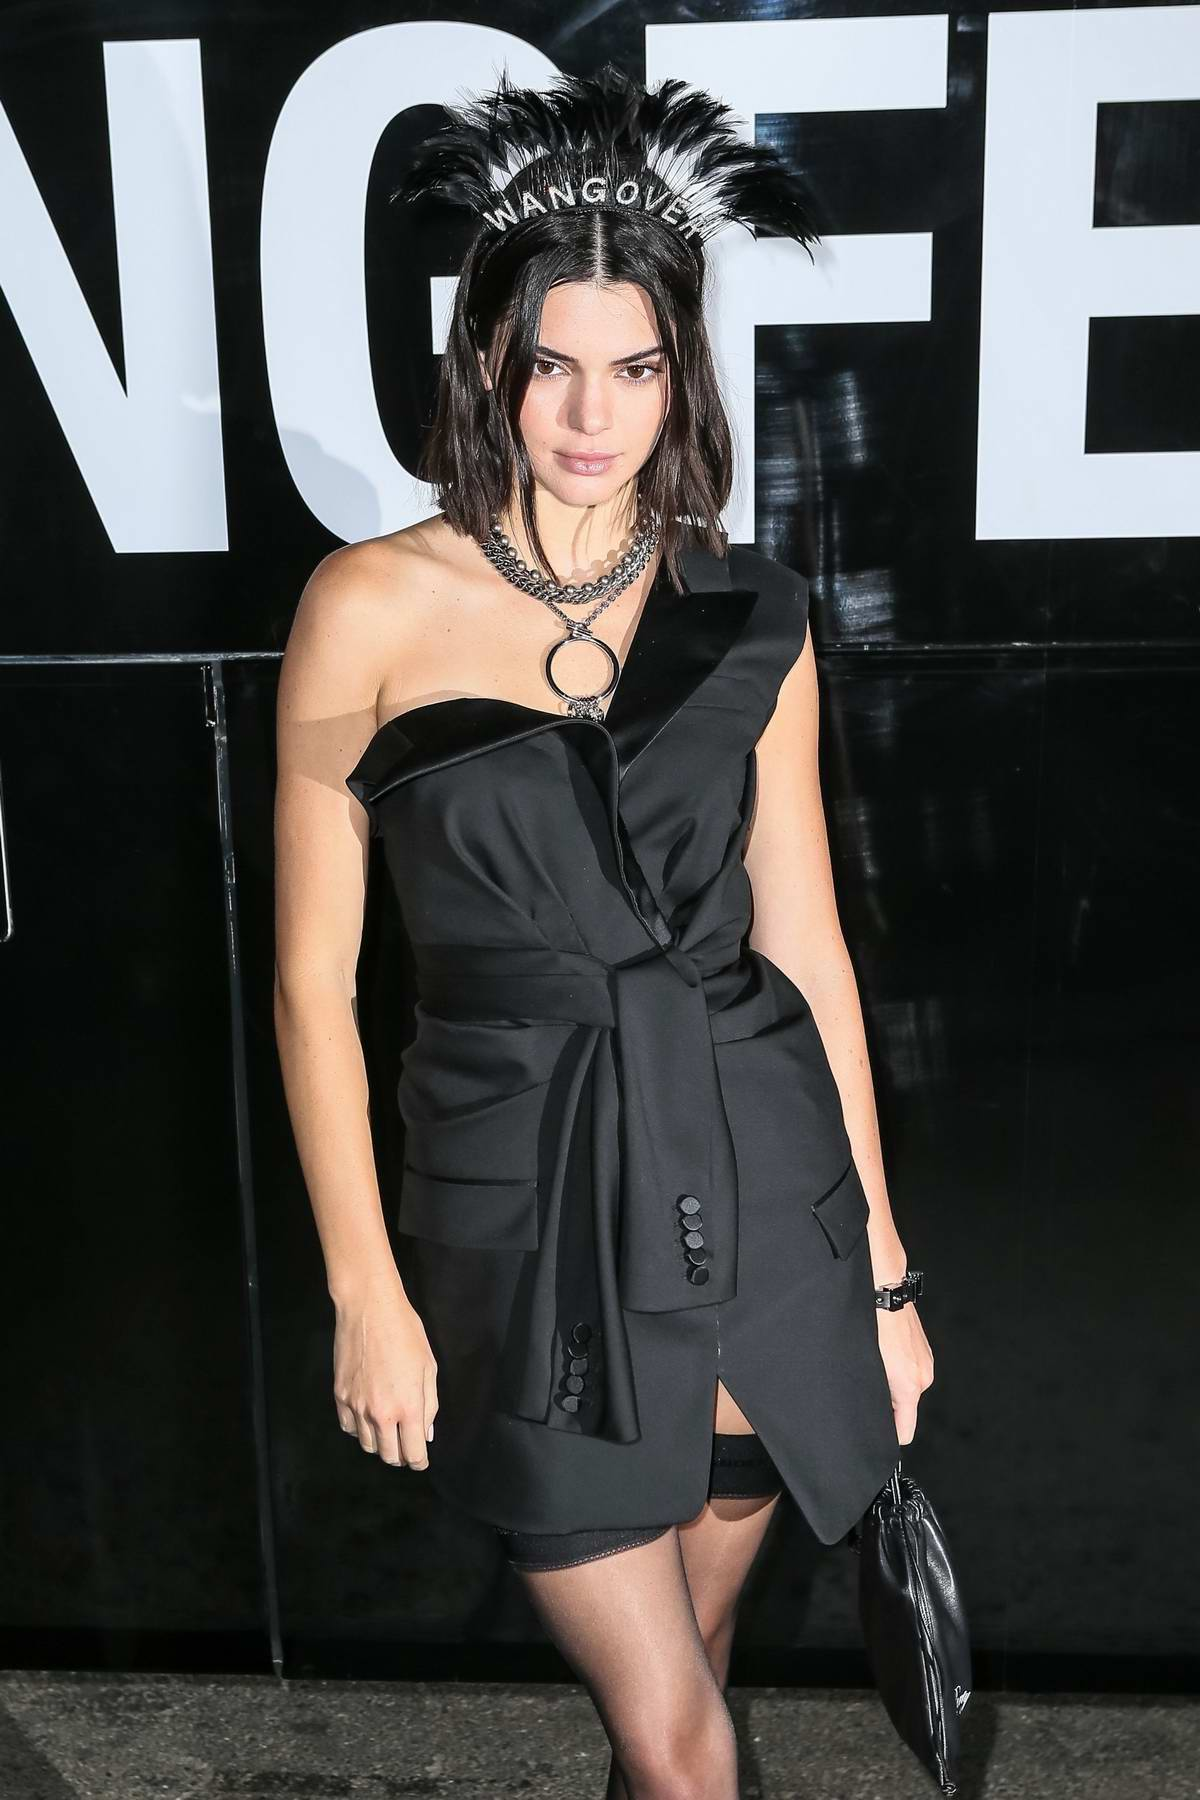 Kendall Jenner attends the Alexander Wang Show during New York Fashion Week